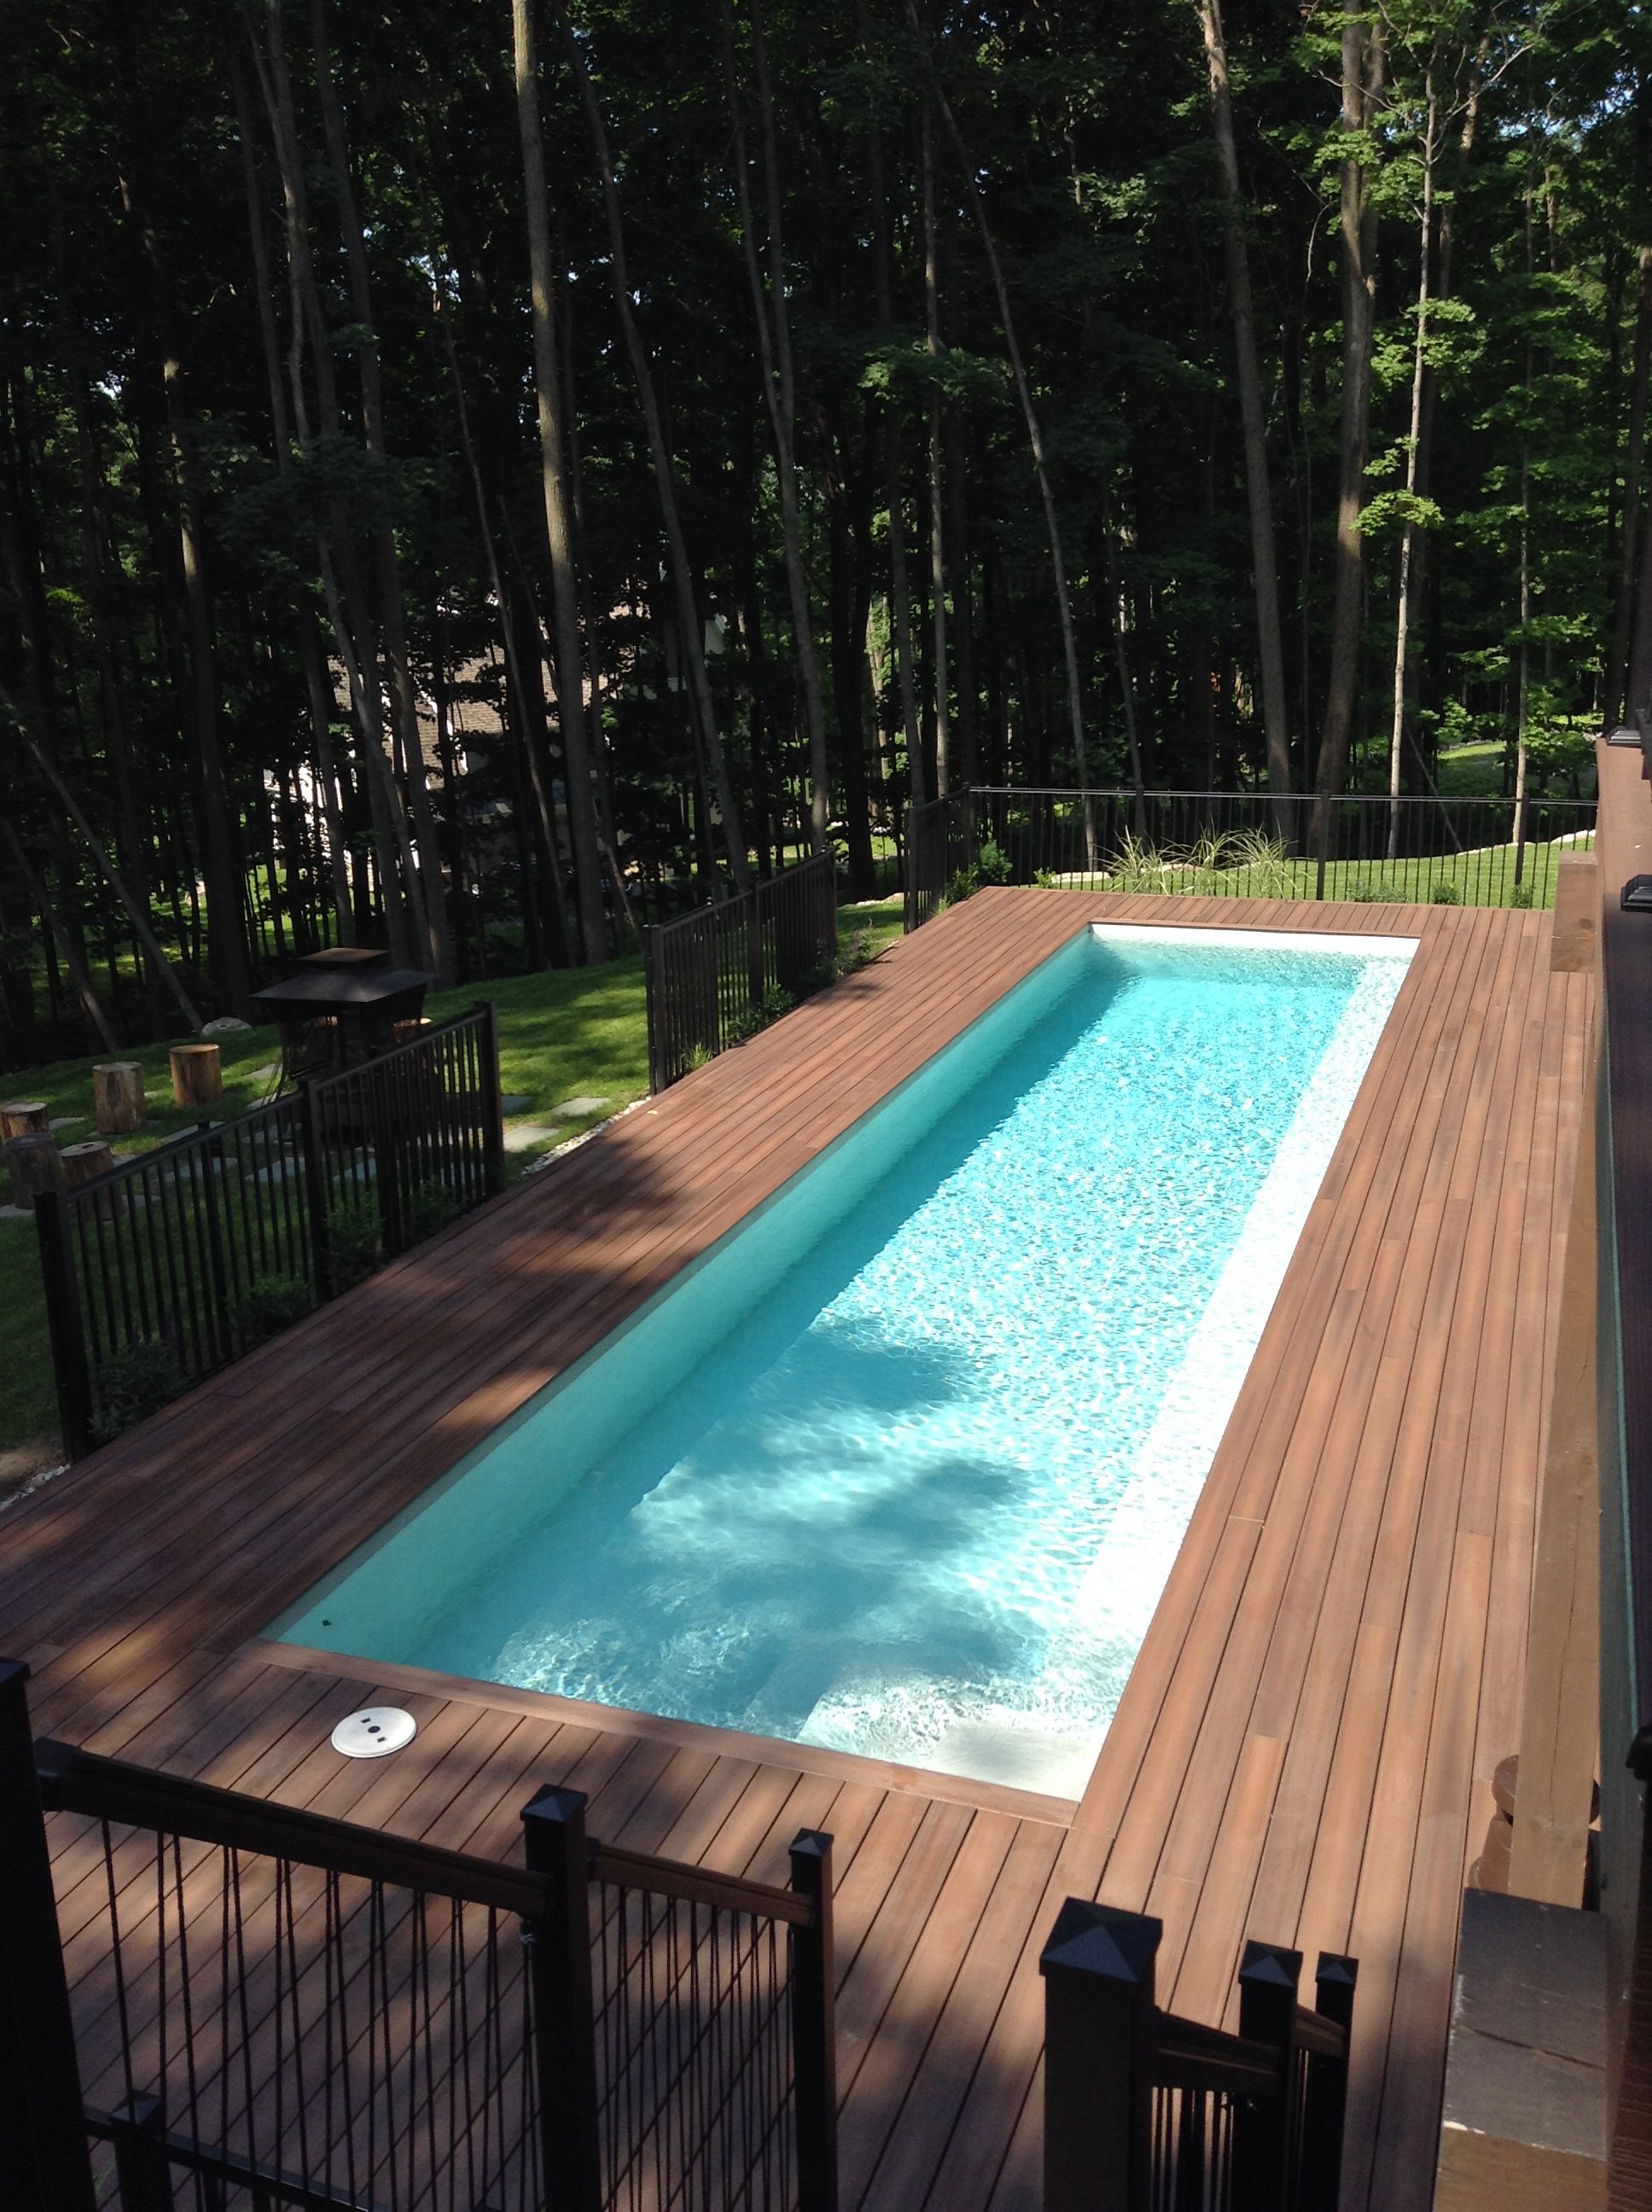 Contemporary Swimming Pool With Fiberon Composite Decking Is A Great Building Material To Use Around Pools Because It Will Never Splinter Like Wood